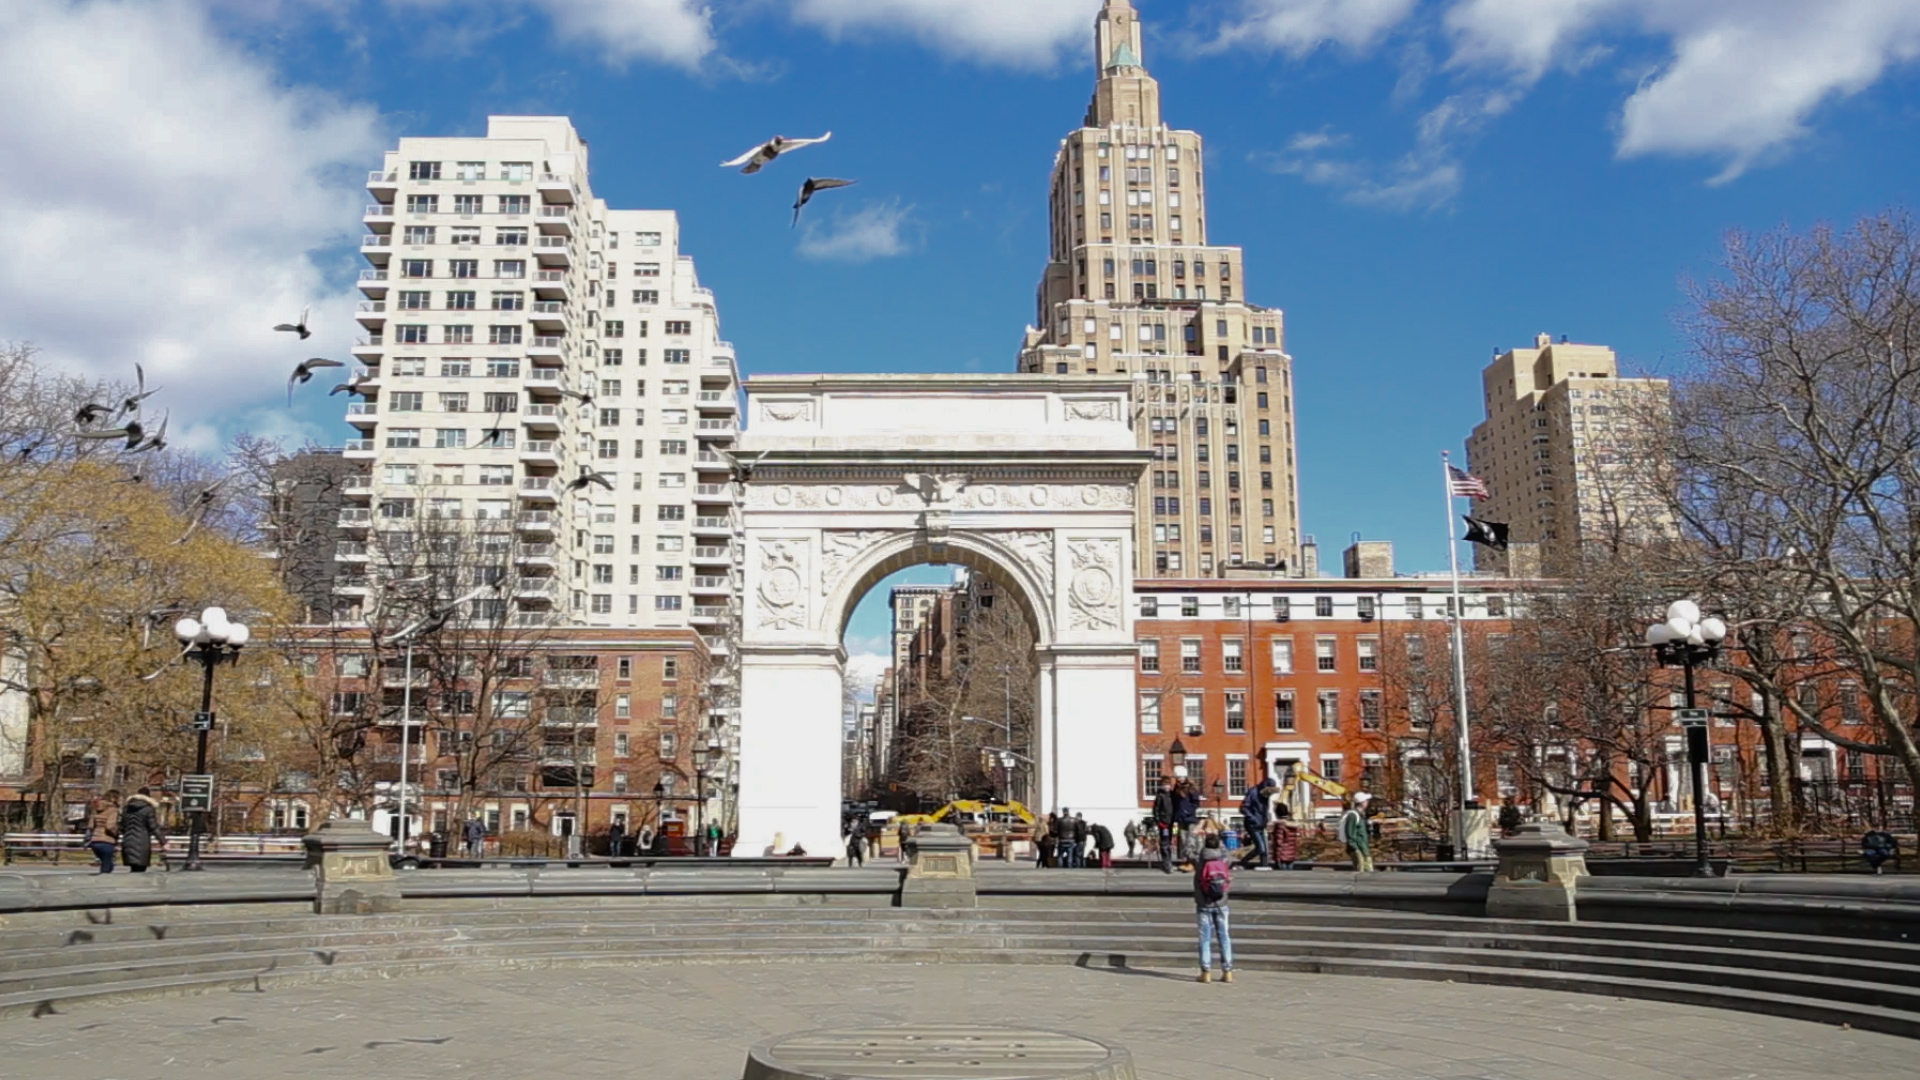 Fall Vibes Wallpaper 8 Reasons Why Washington Square Park Is Amazing The New